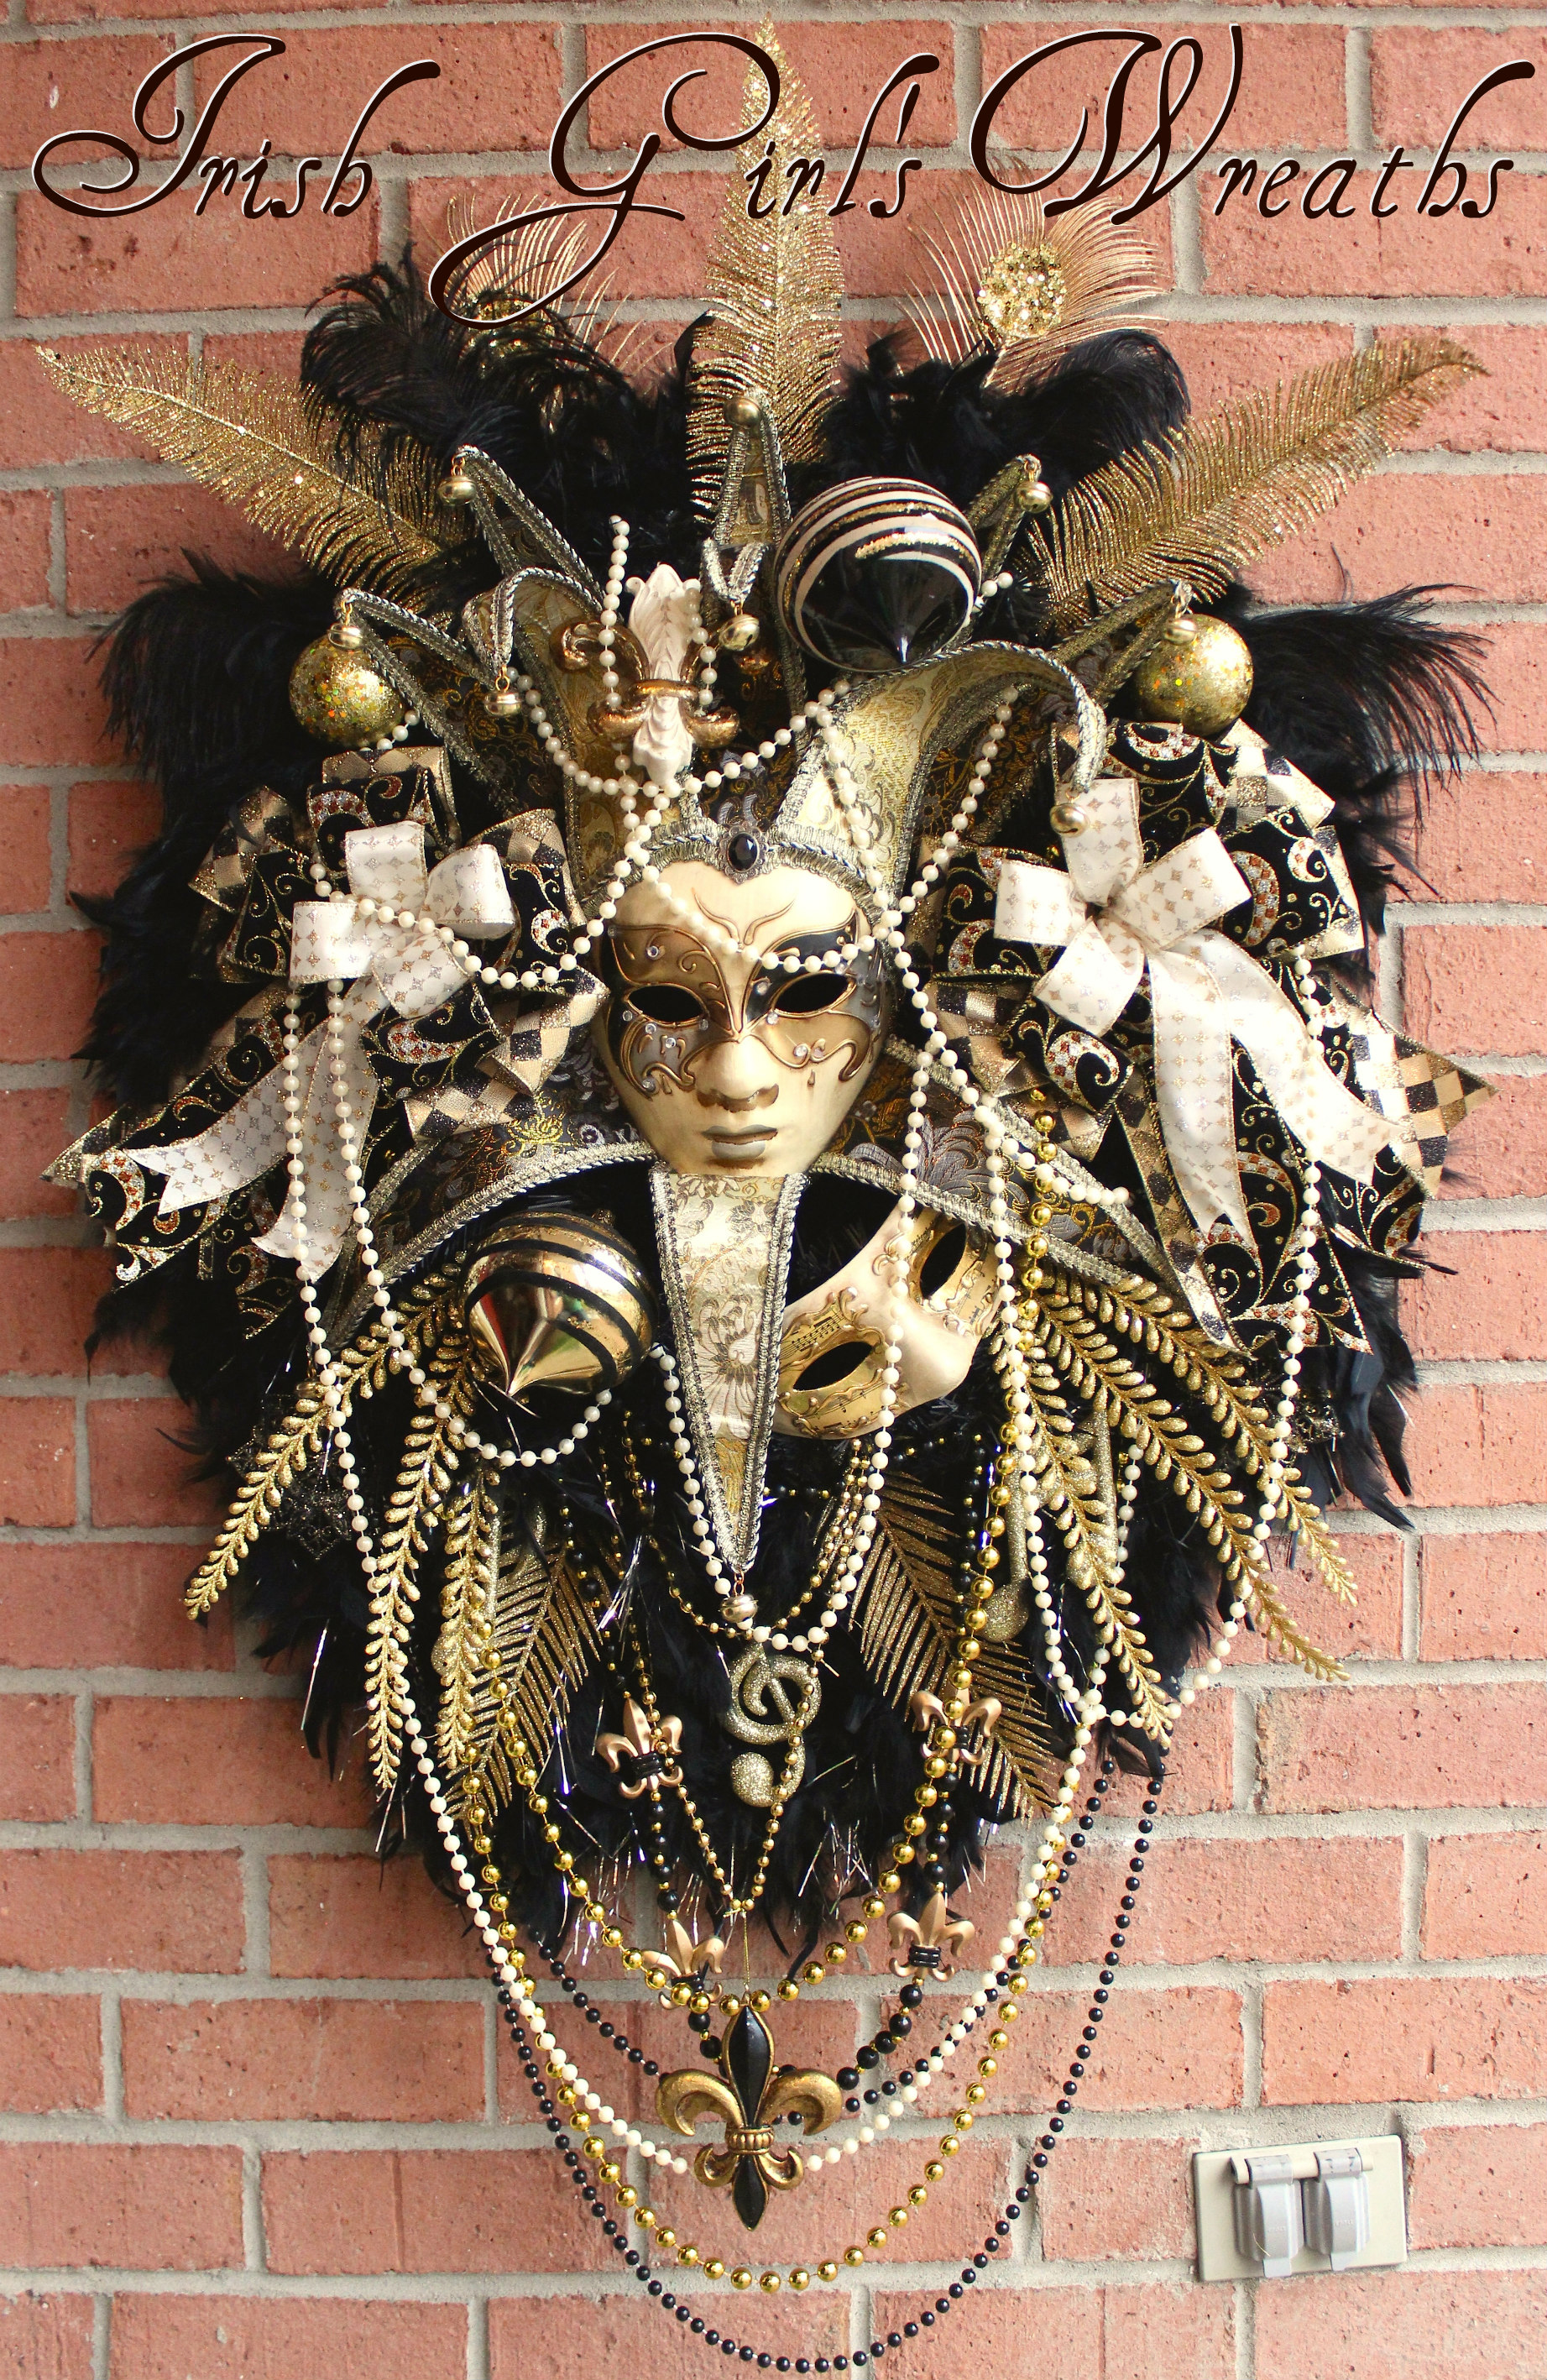 HUGE 2017 Black & Gold Mardi Gras Wreath, Saints, Fleur de Lis, Masquerade, Custom for Patti